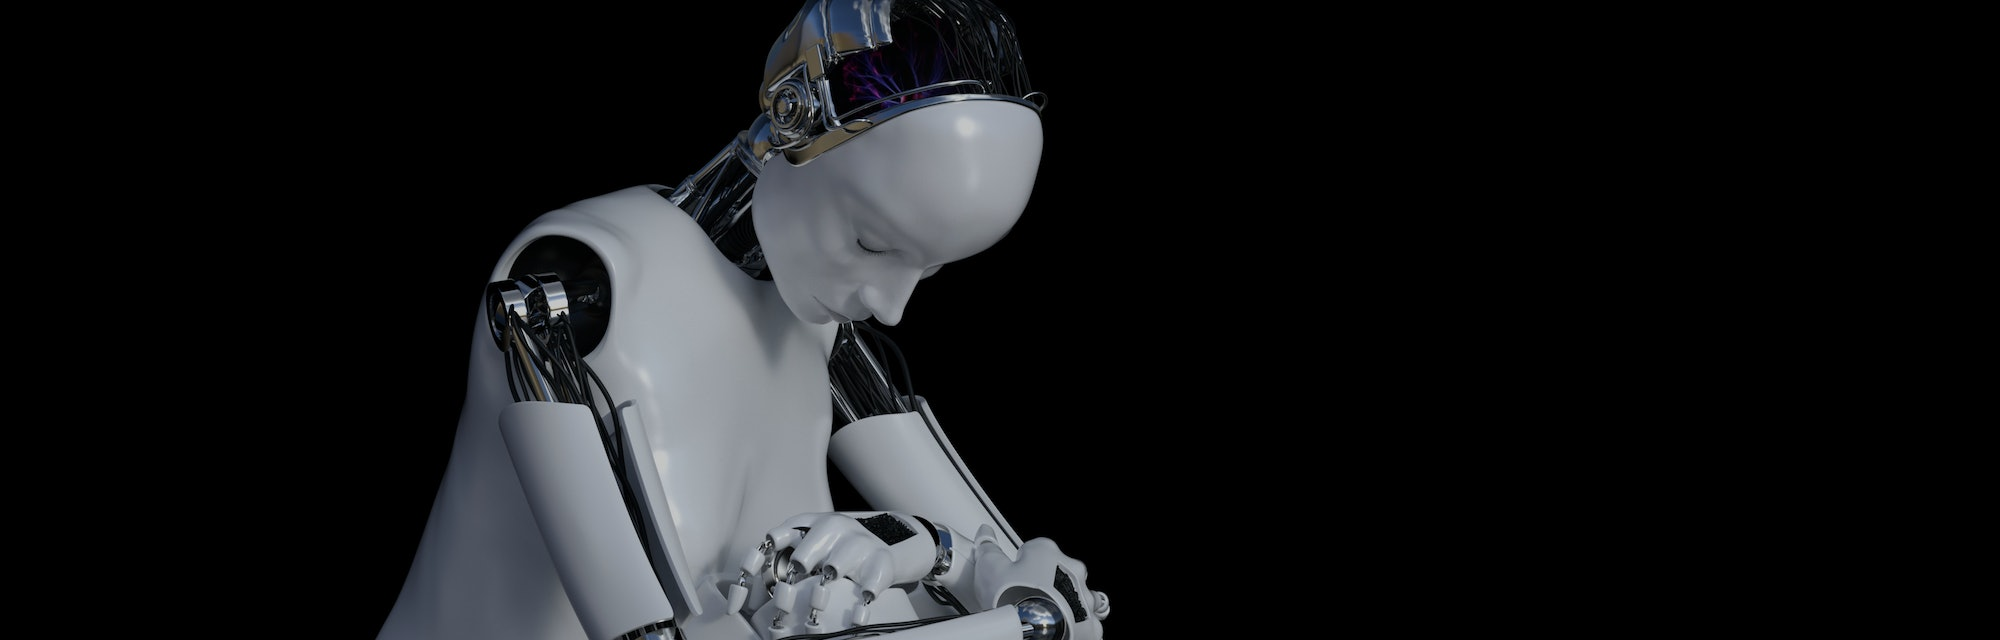 3D rendering of a female robot sitting in solitude on the floor and looking sad or depressed. Black background.